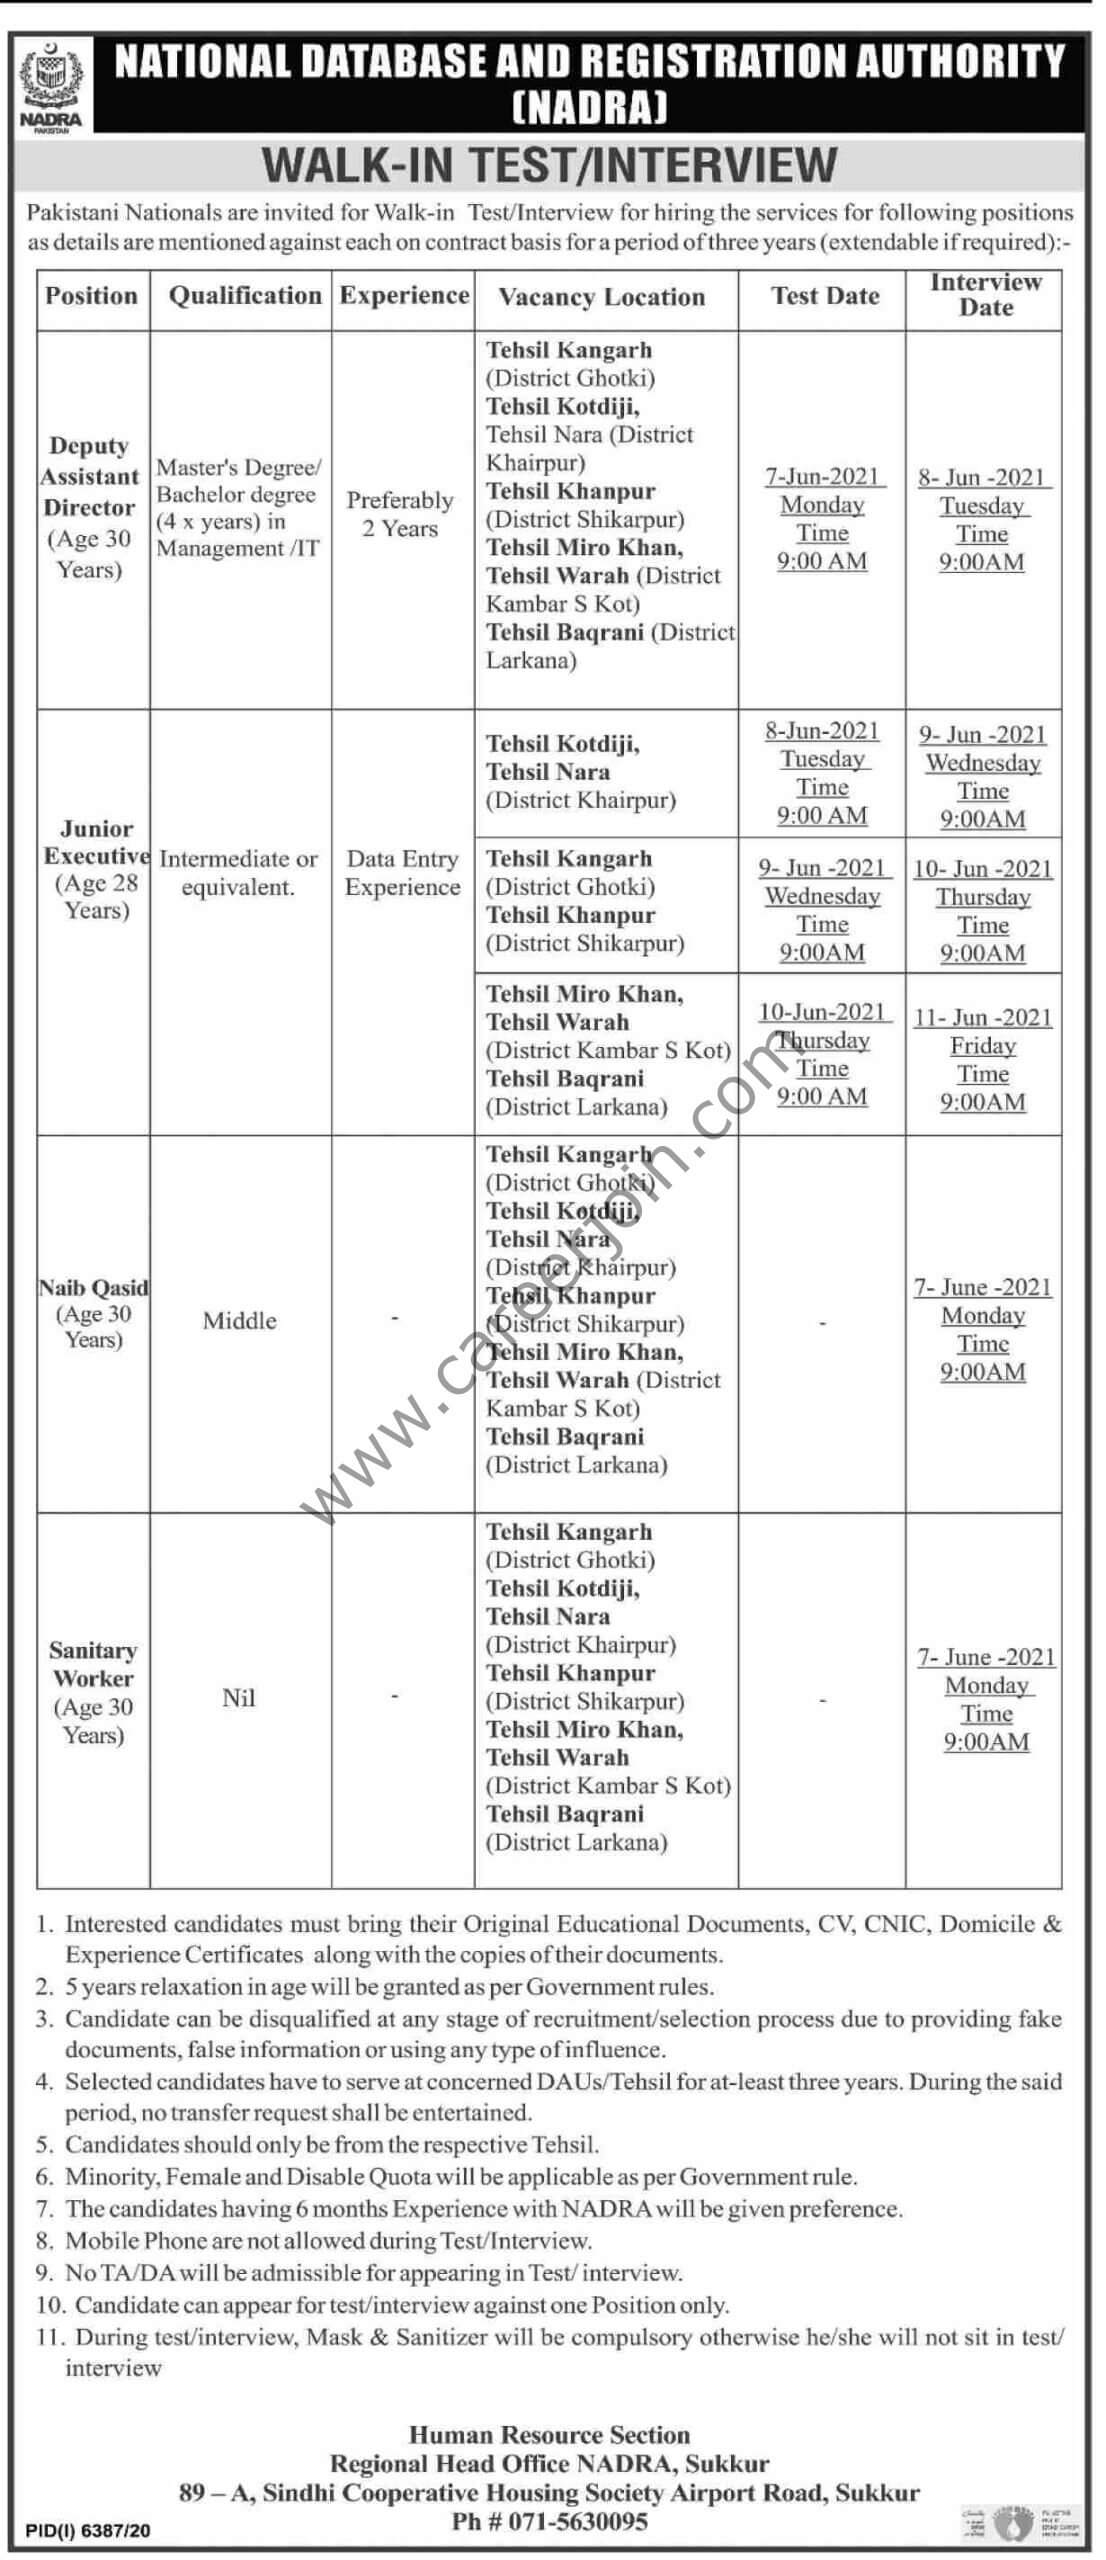 National Database and Registration Authority (NADRA) Jobs 2021 in Pakistan